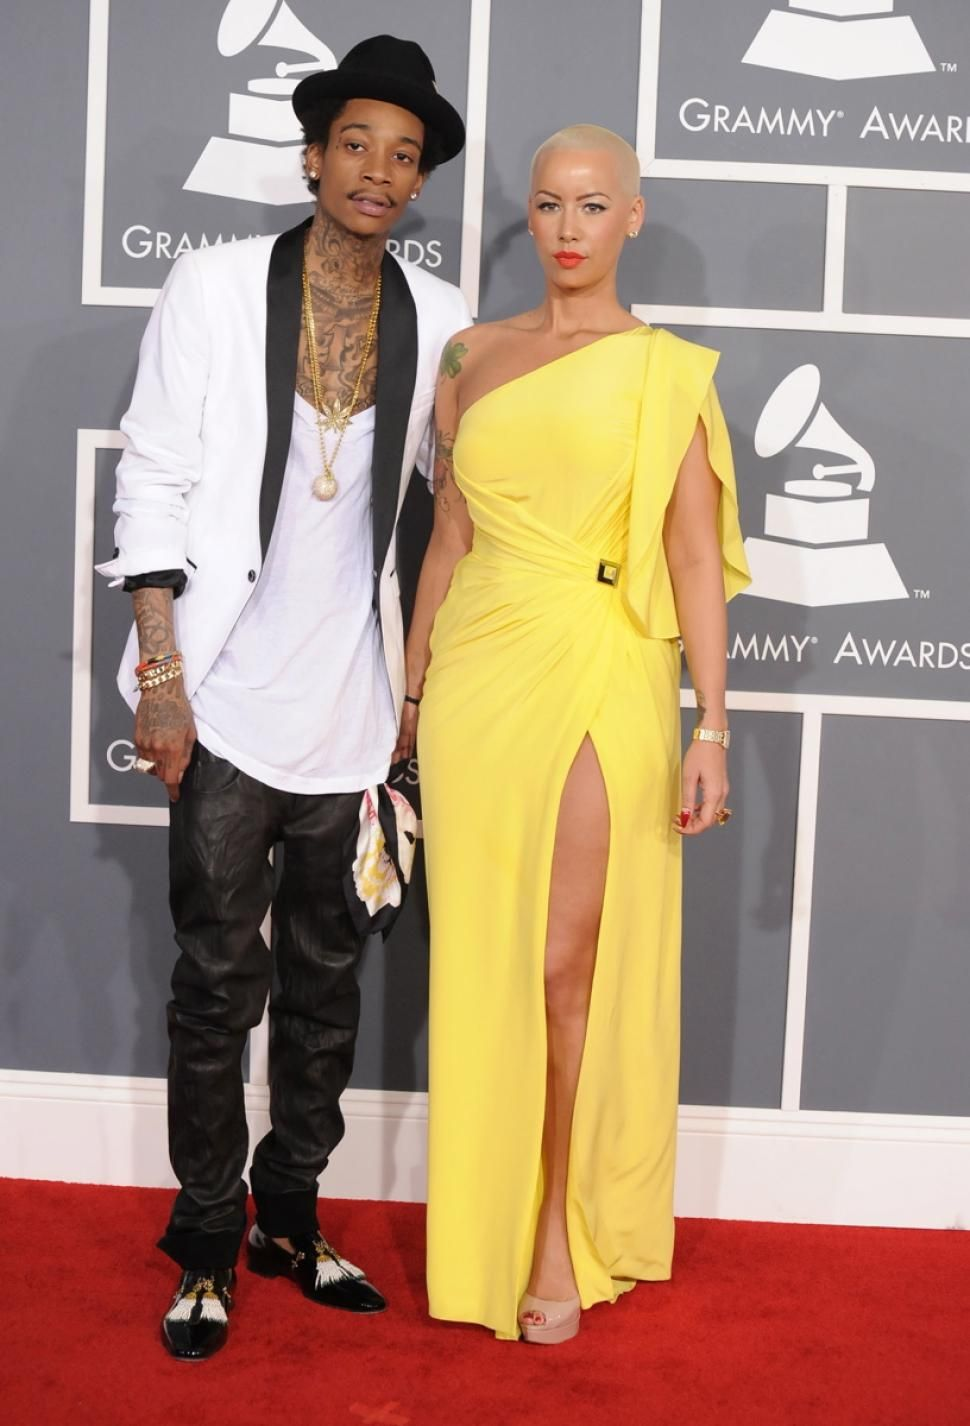 WizWearsCoolPants See why Kanye called out Wiz Khalifa's